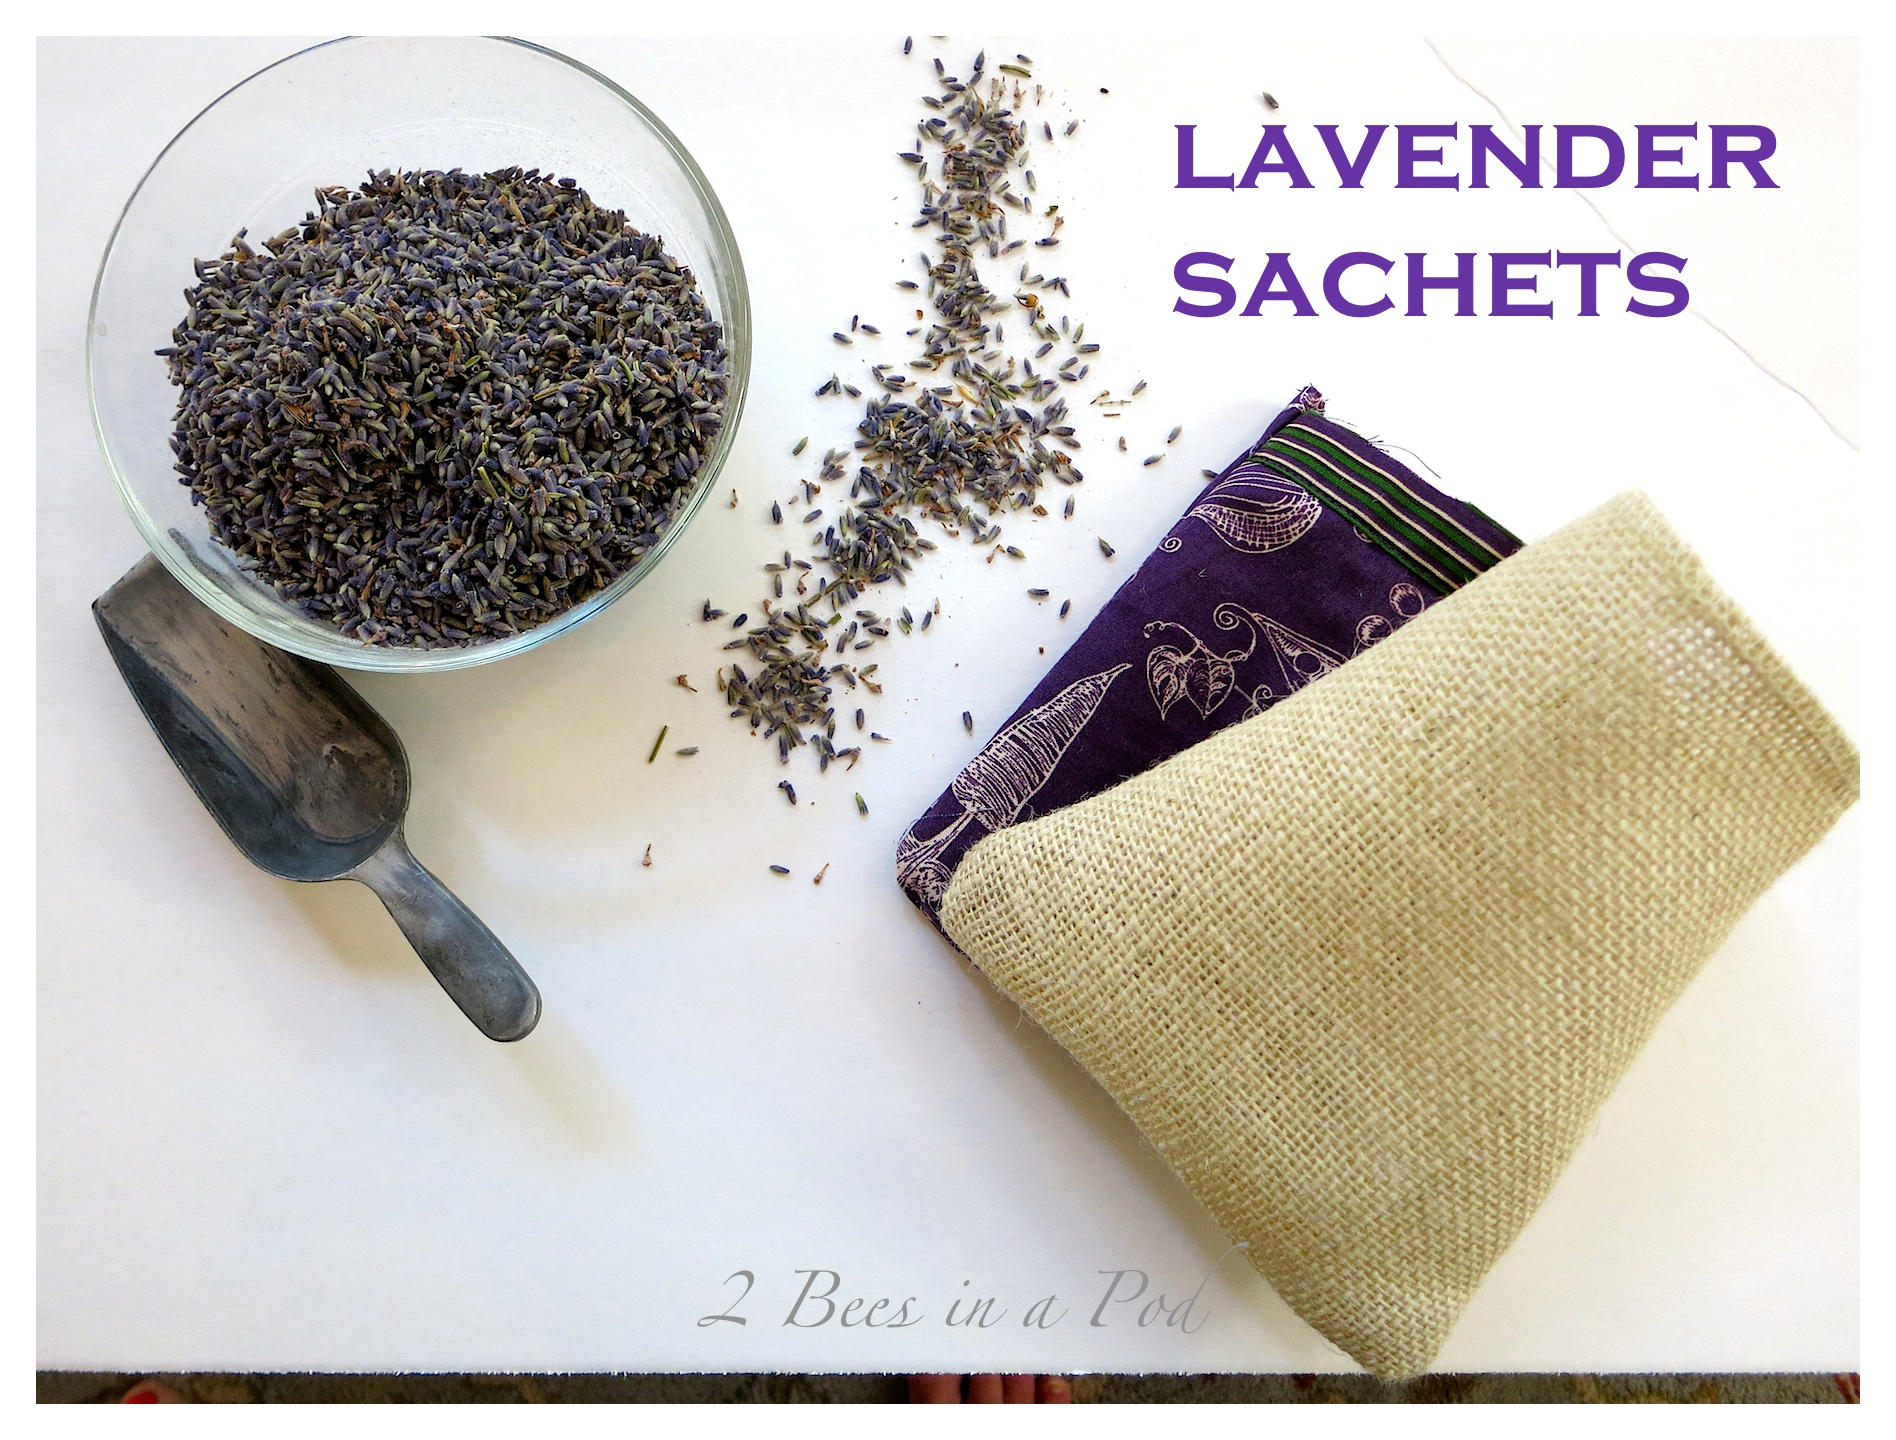 DIY Lavender Sachets - easy sew project. Use burlap fabric or cloth of your choose. Sew on three sides and then fill with lavender. Sew fourth side together. I decorate with a burlap rose. Sachet is great for drawers, on a side table in a bowl or microwave to remove funky odors.